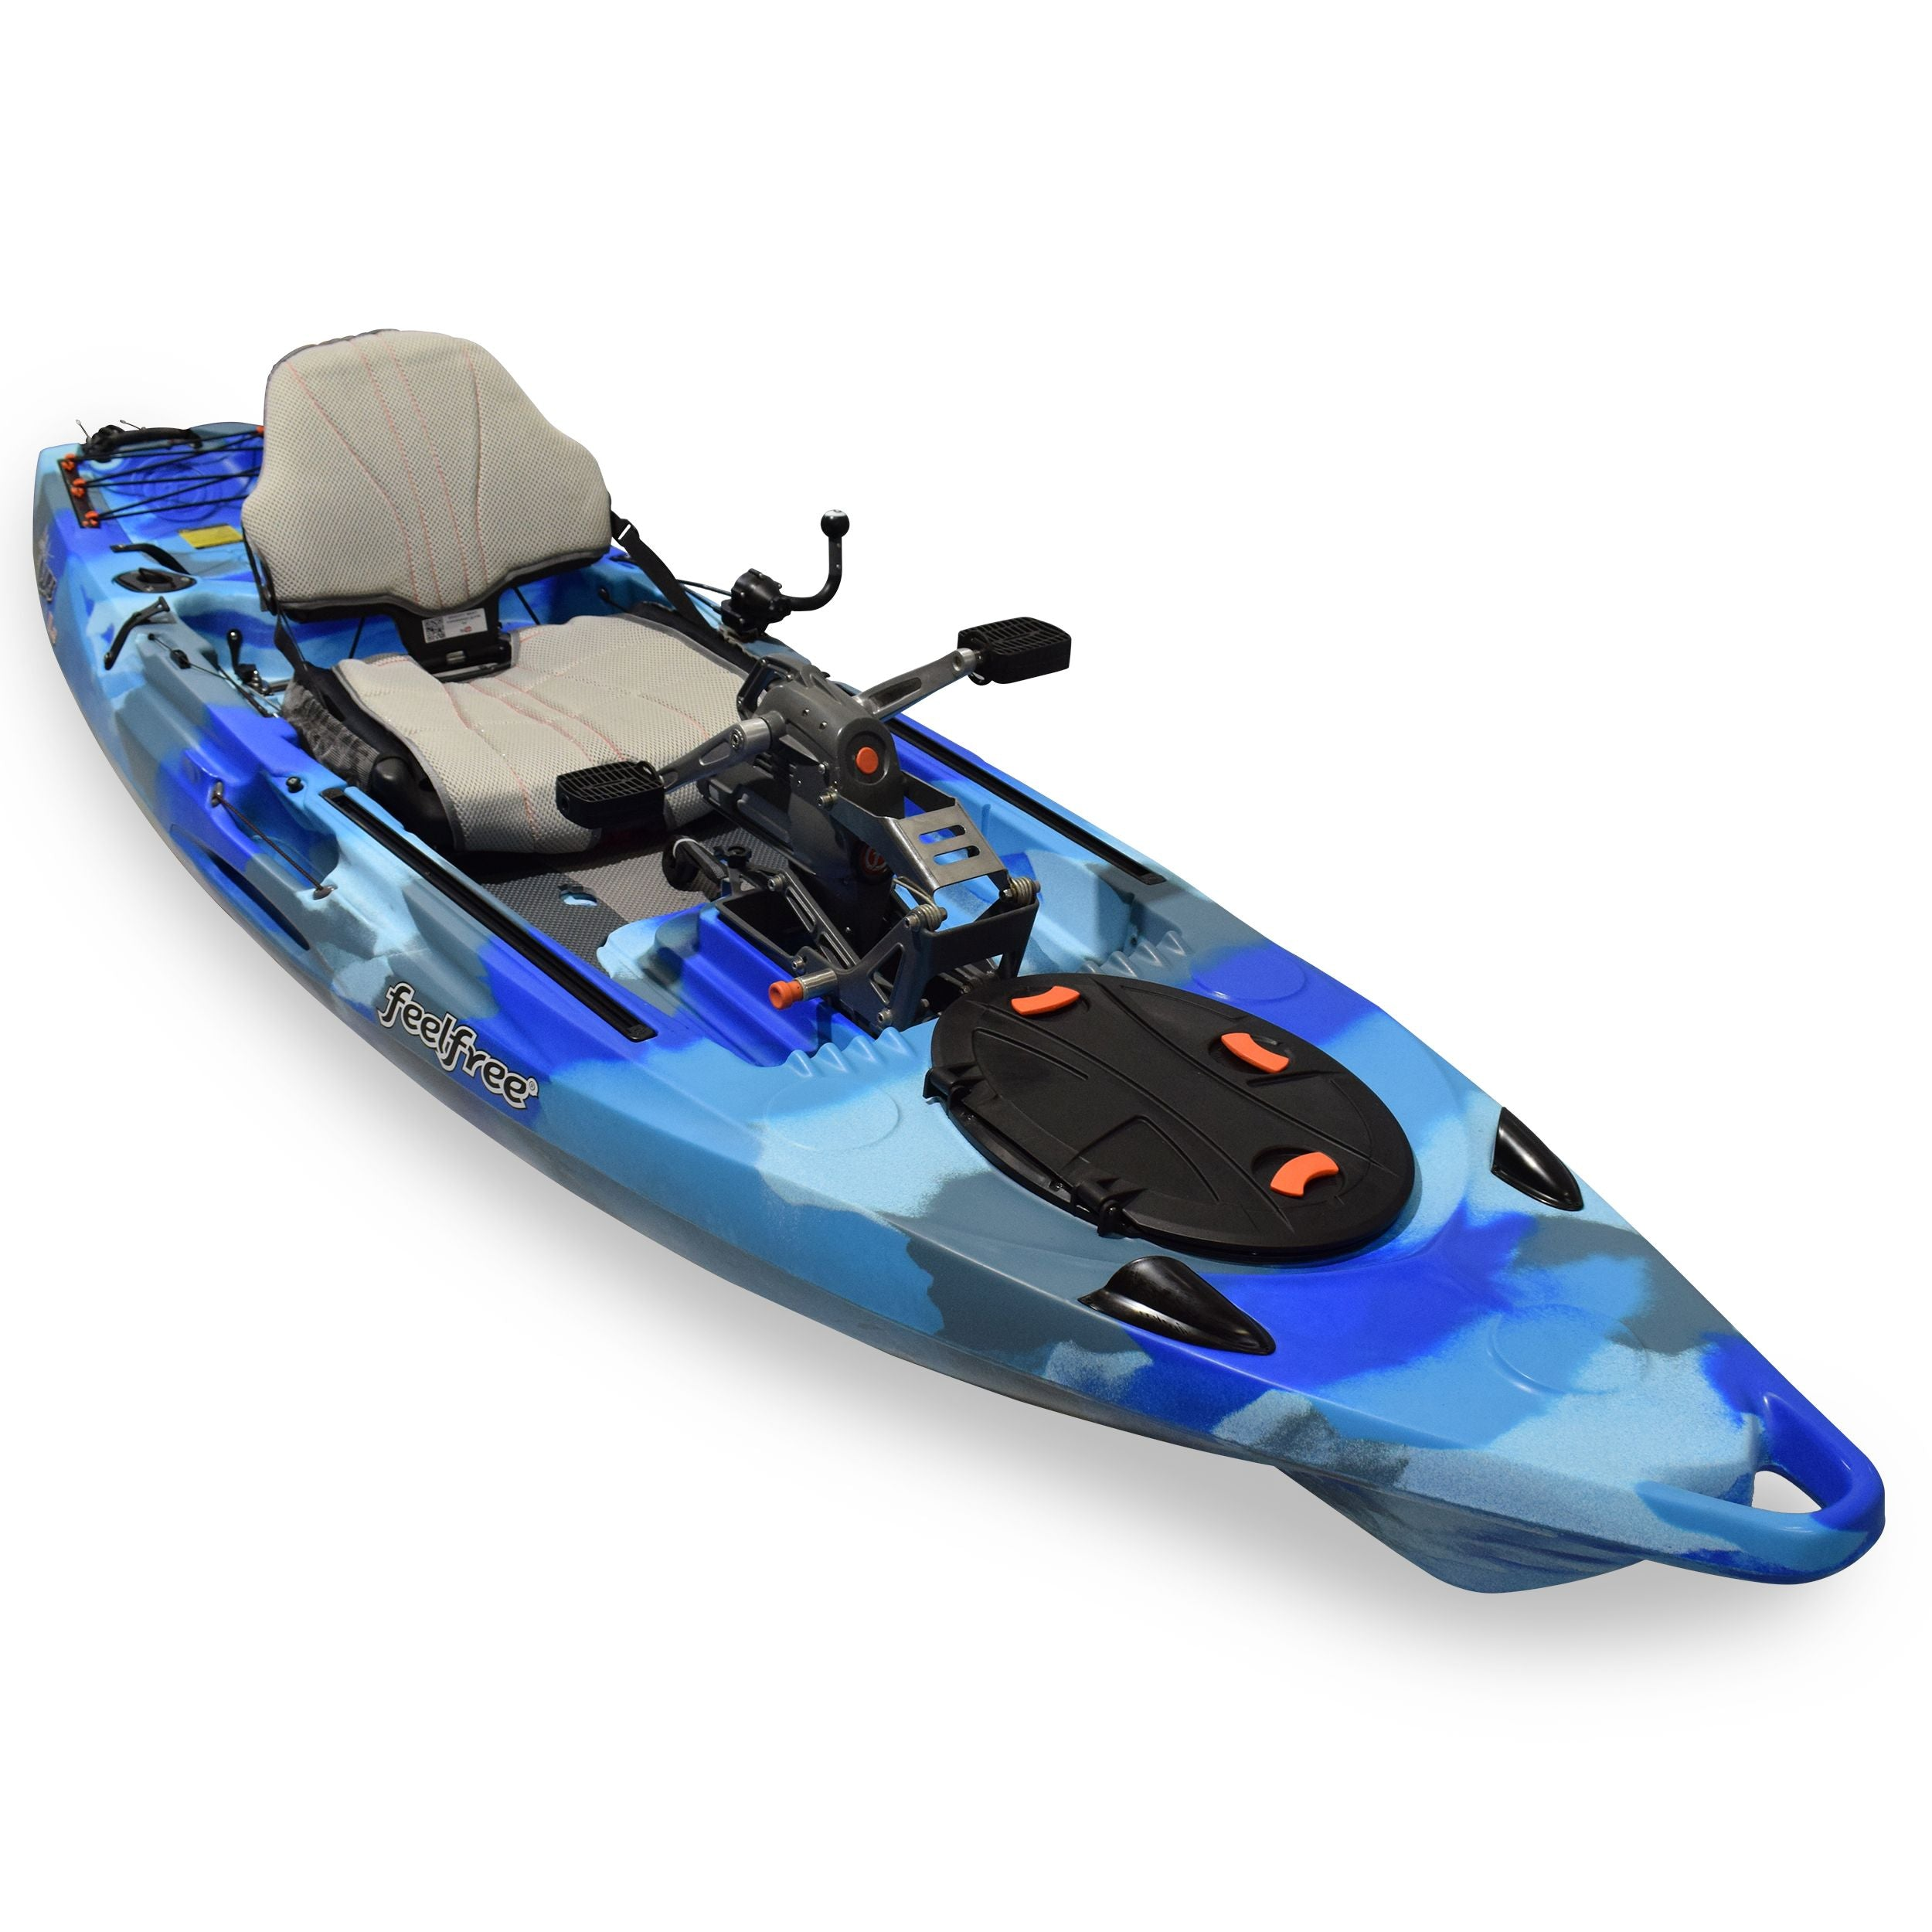 Feel Free Lure 11 5 With Overdrive Waves Overseas Going kayaking pits one person against the elements and often that one person triumphs over the difficult challenges. feel free lure 11 5 v2 with overdrive